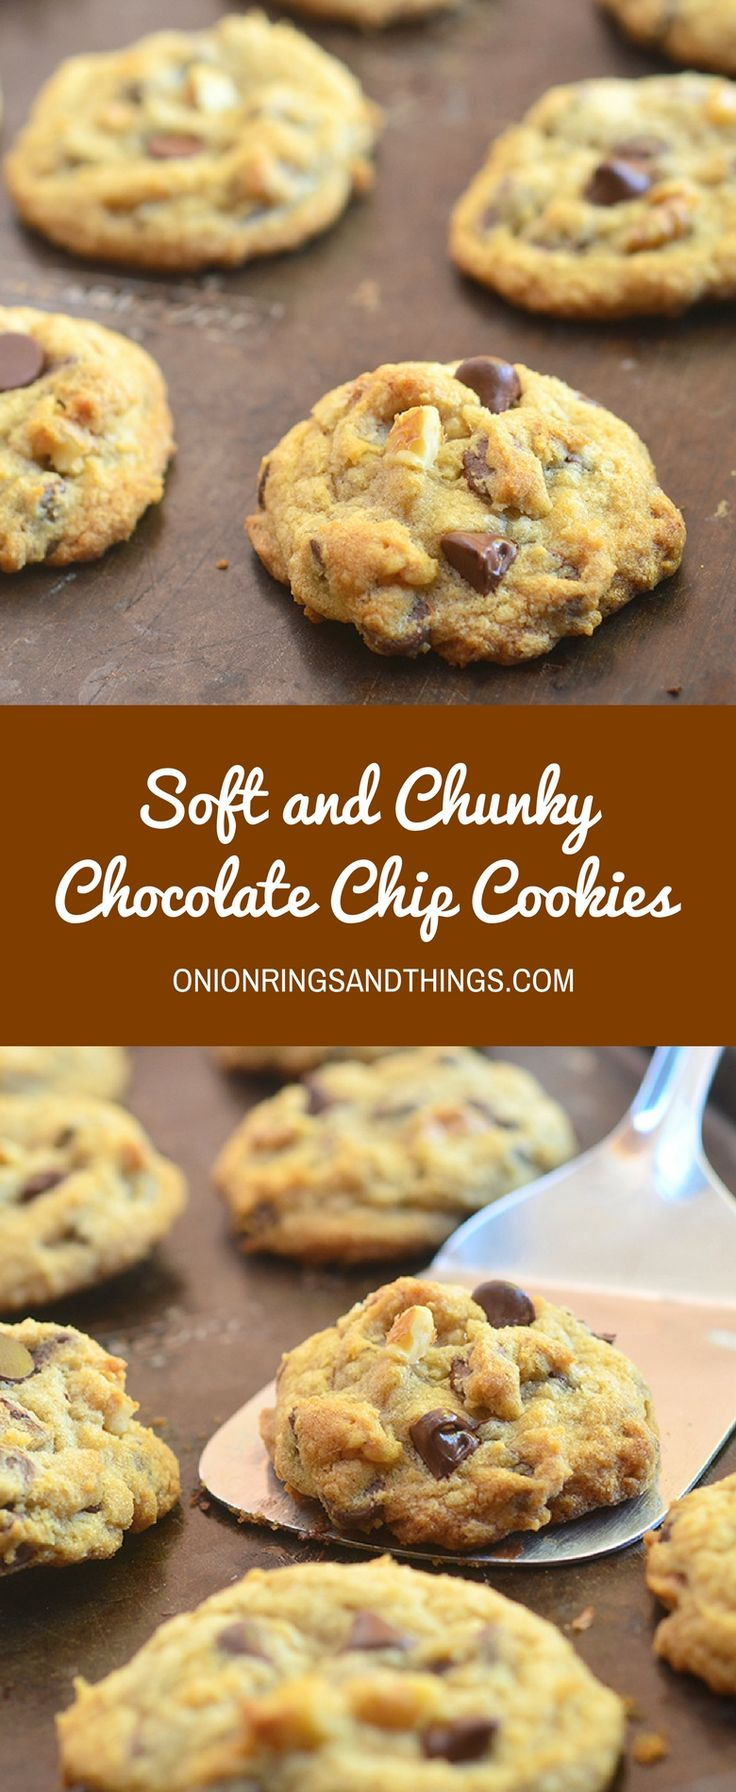 Chocolate Chip Cookies are soft and chunky, moist and chewy on the inside for a whole new level of yum. The secret is 36-hour chill time!